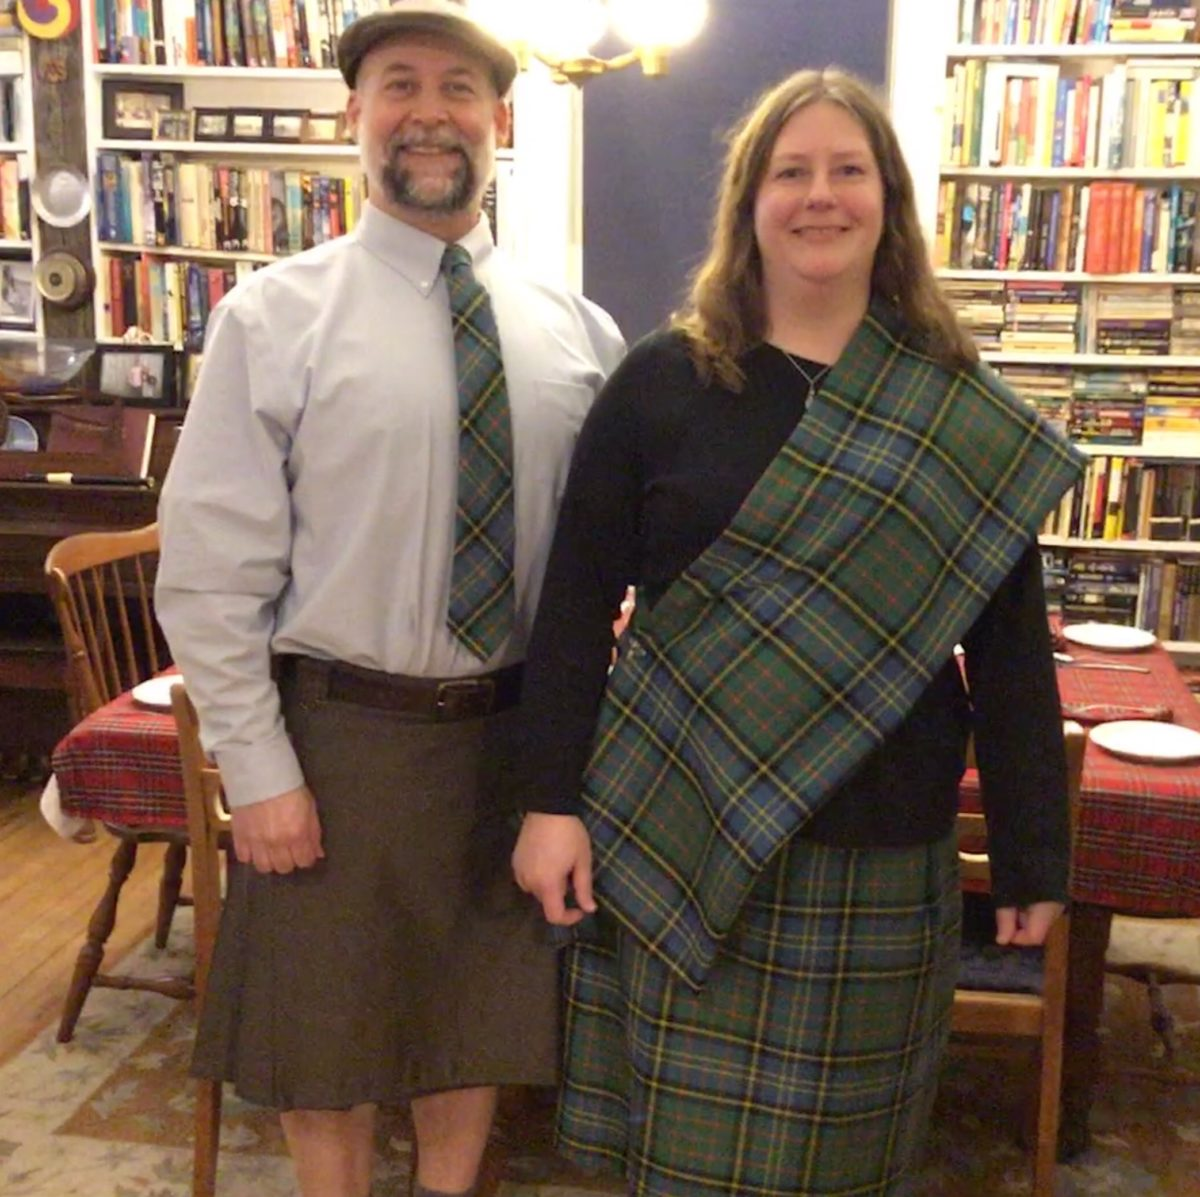 Sewing a Skirt & Sash – A Project for a Special Night